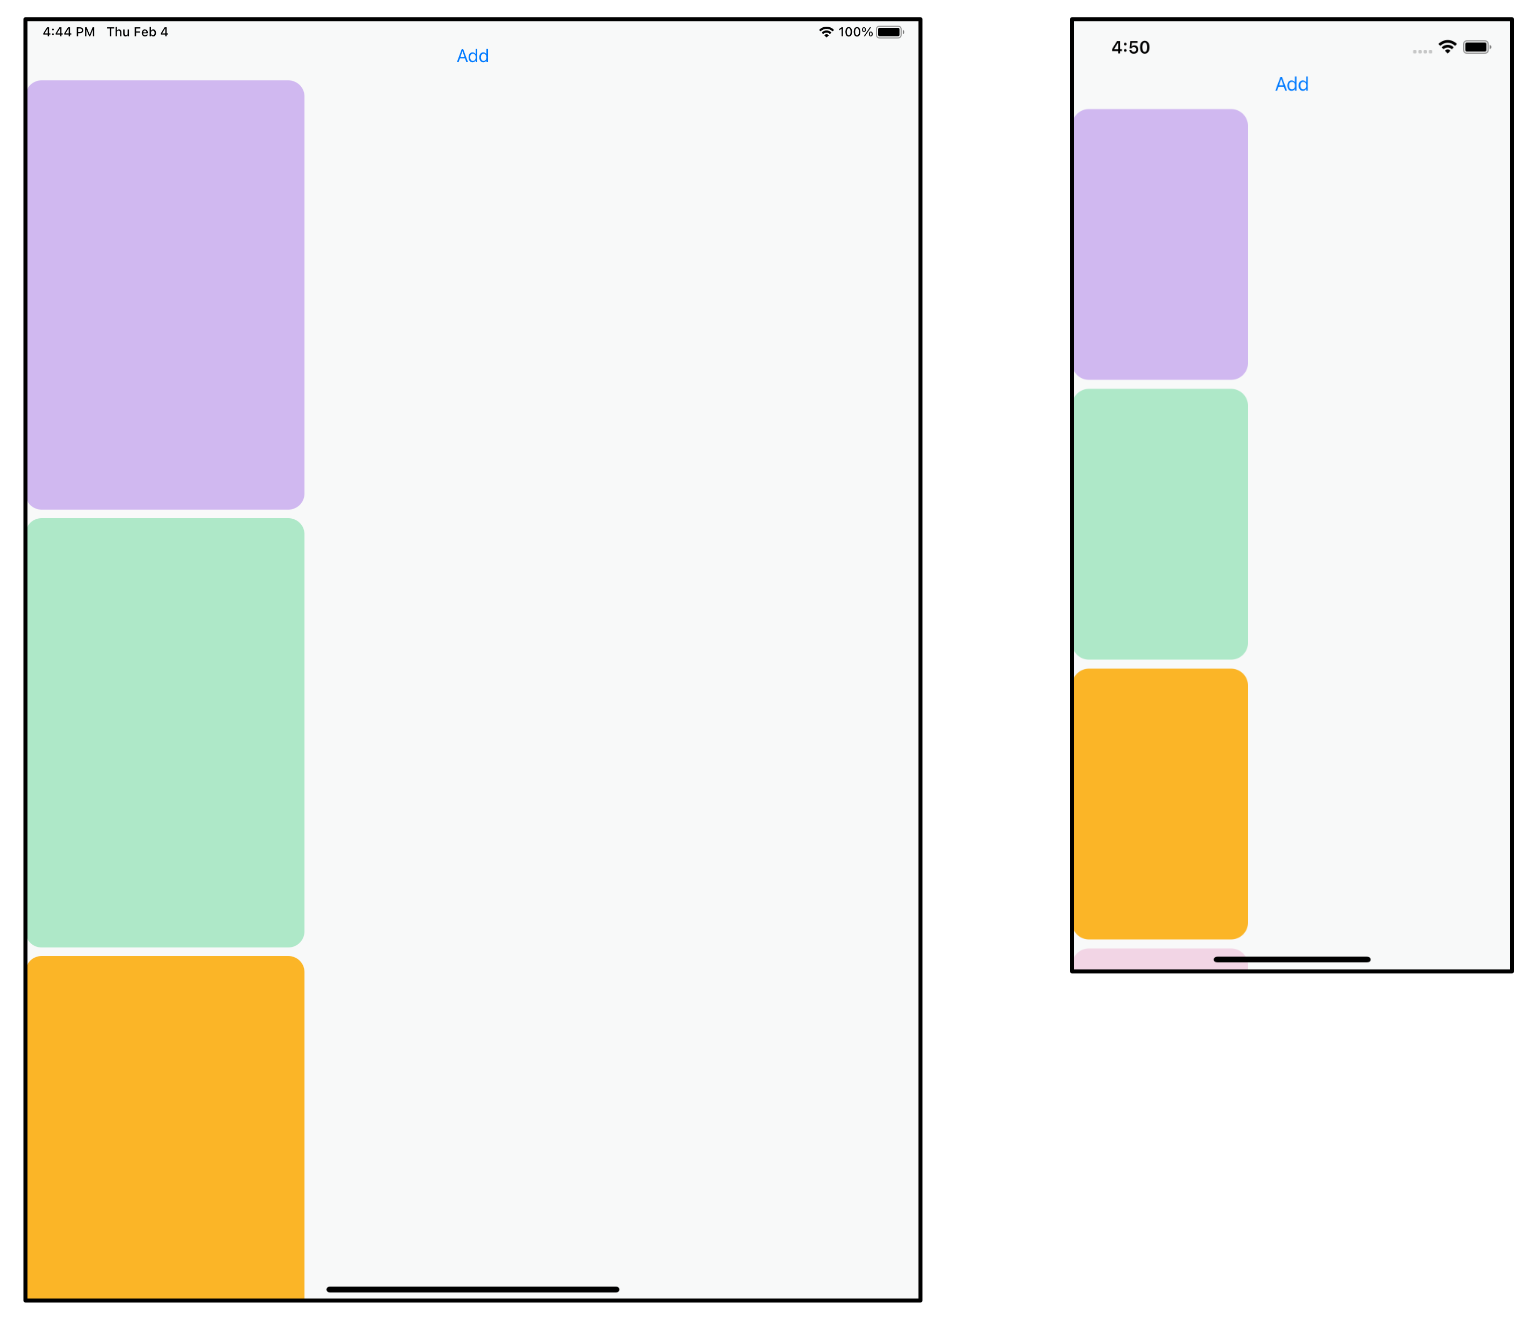 Thumbnail sizes on iPad and iPhone